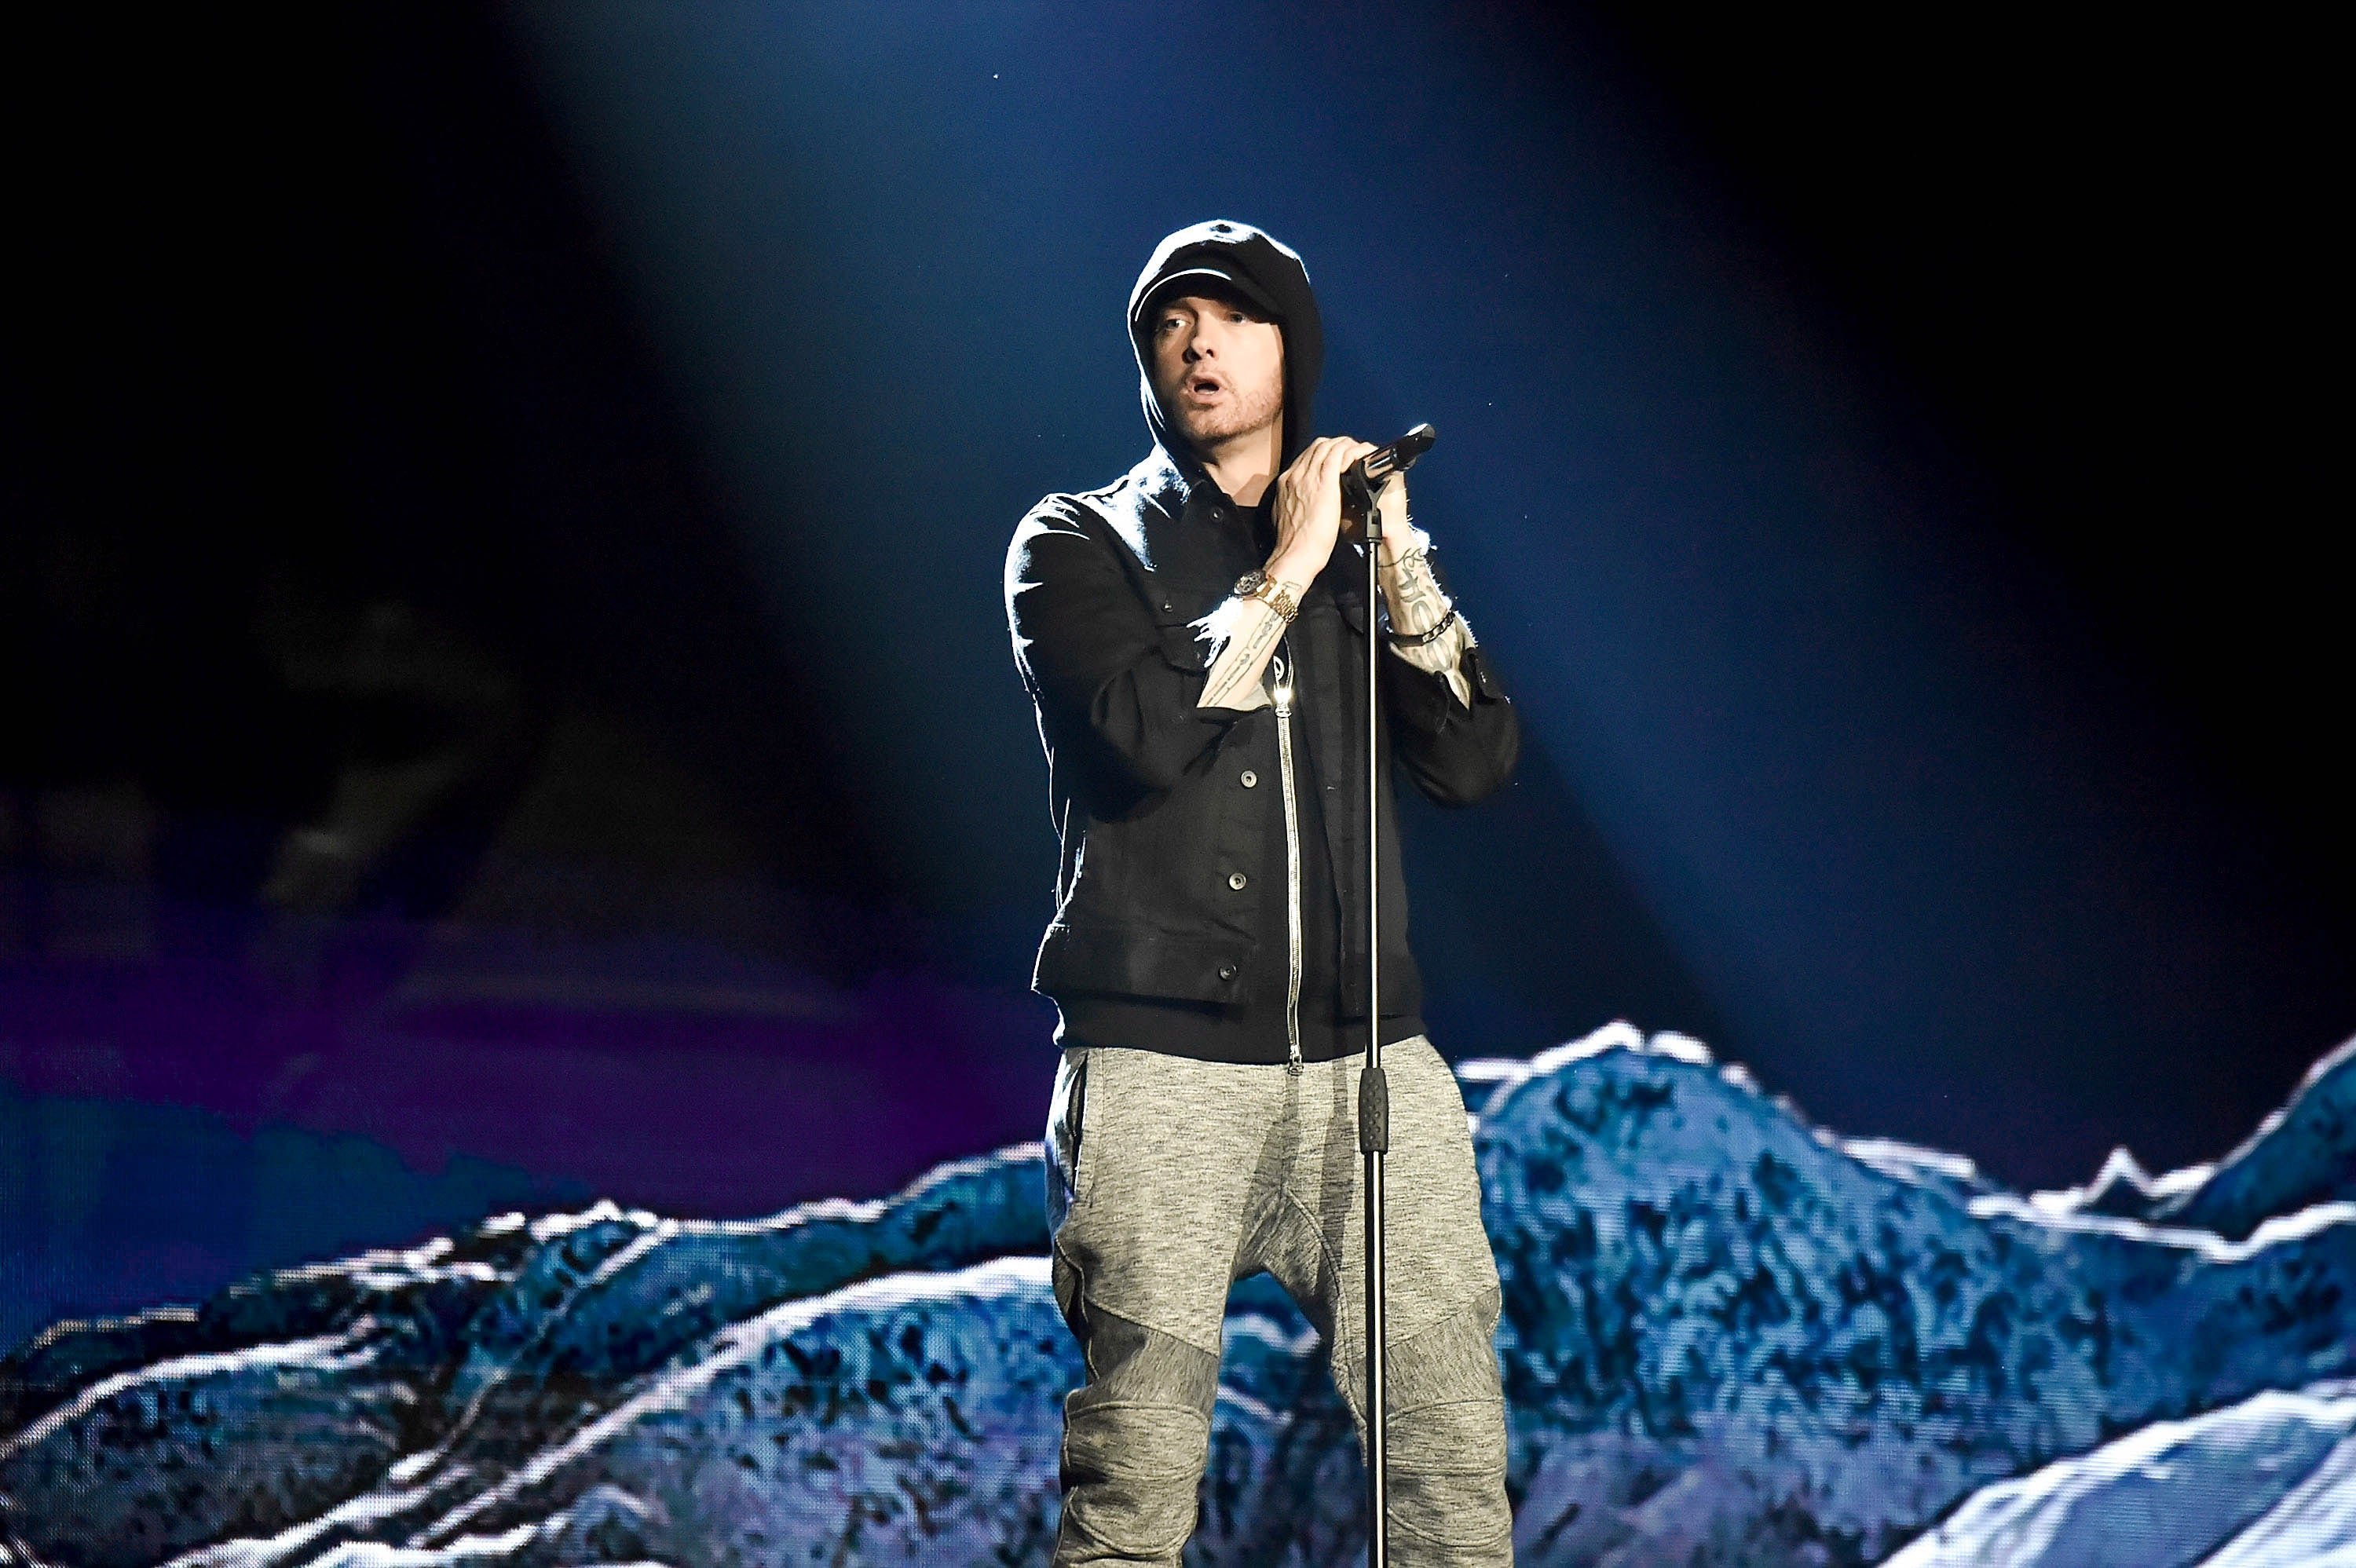 Eminem performs onstage during the MTV EMAs on Nov. 12 in London.